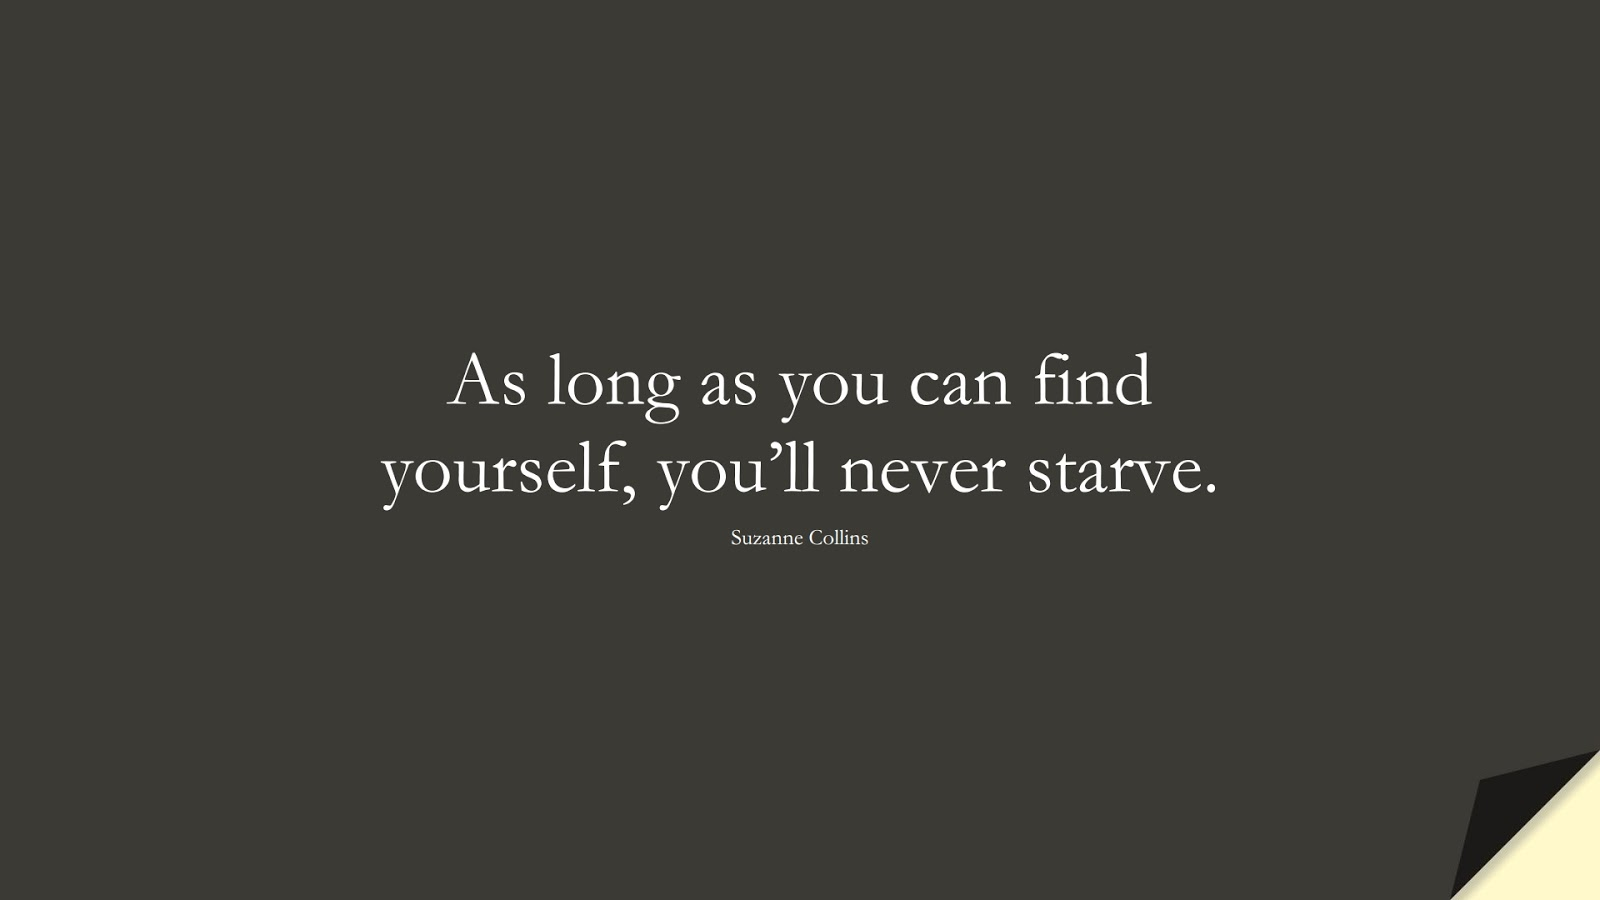 As long as you can find yourself, you'll never starve. (Suzanne Collins);  #ShortQuotes